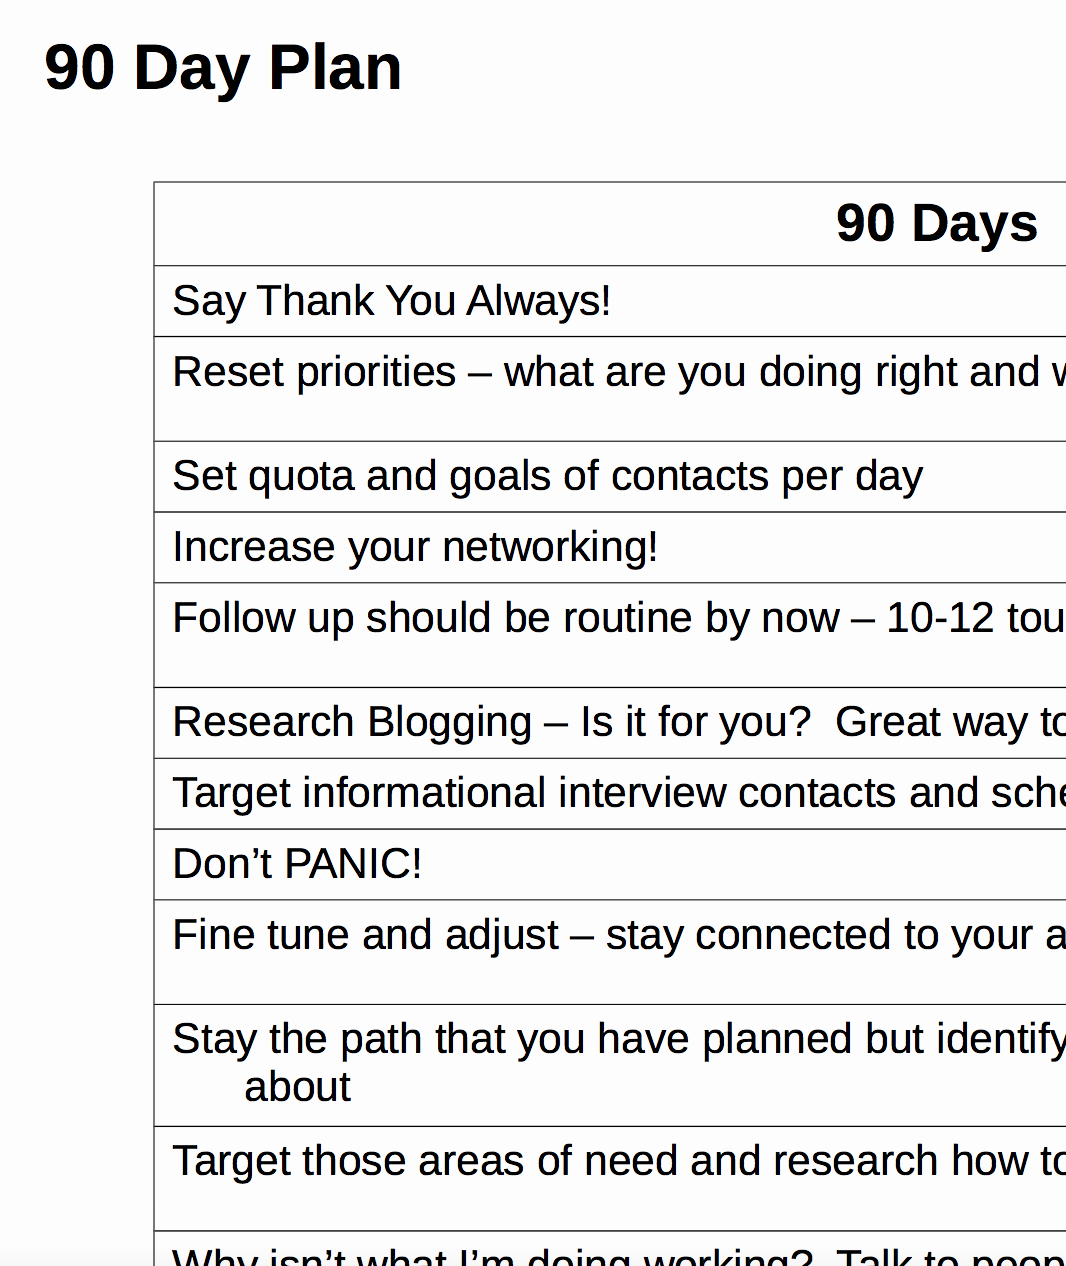 90 Day Action Plan Templates New 90 Day Action Plan Template 2